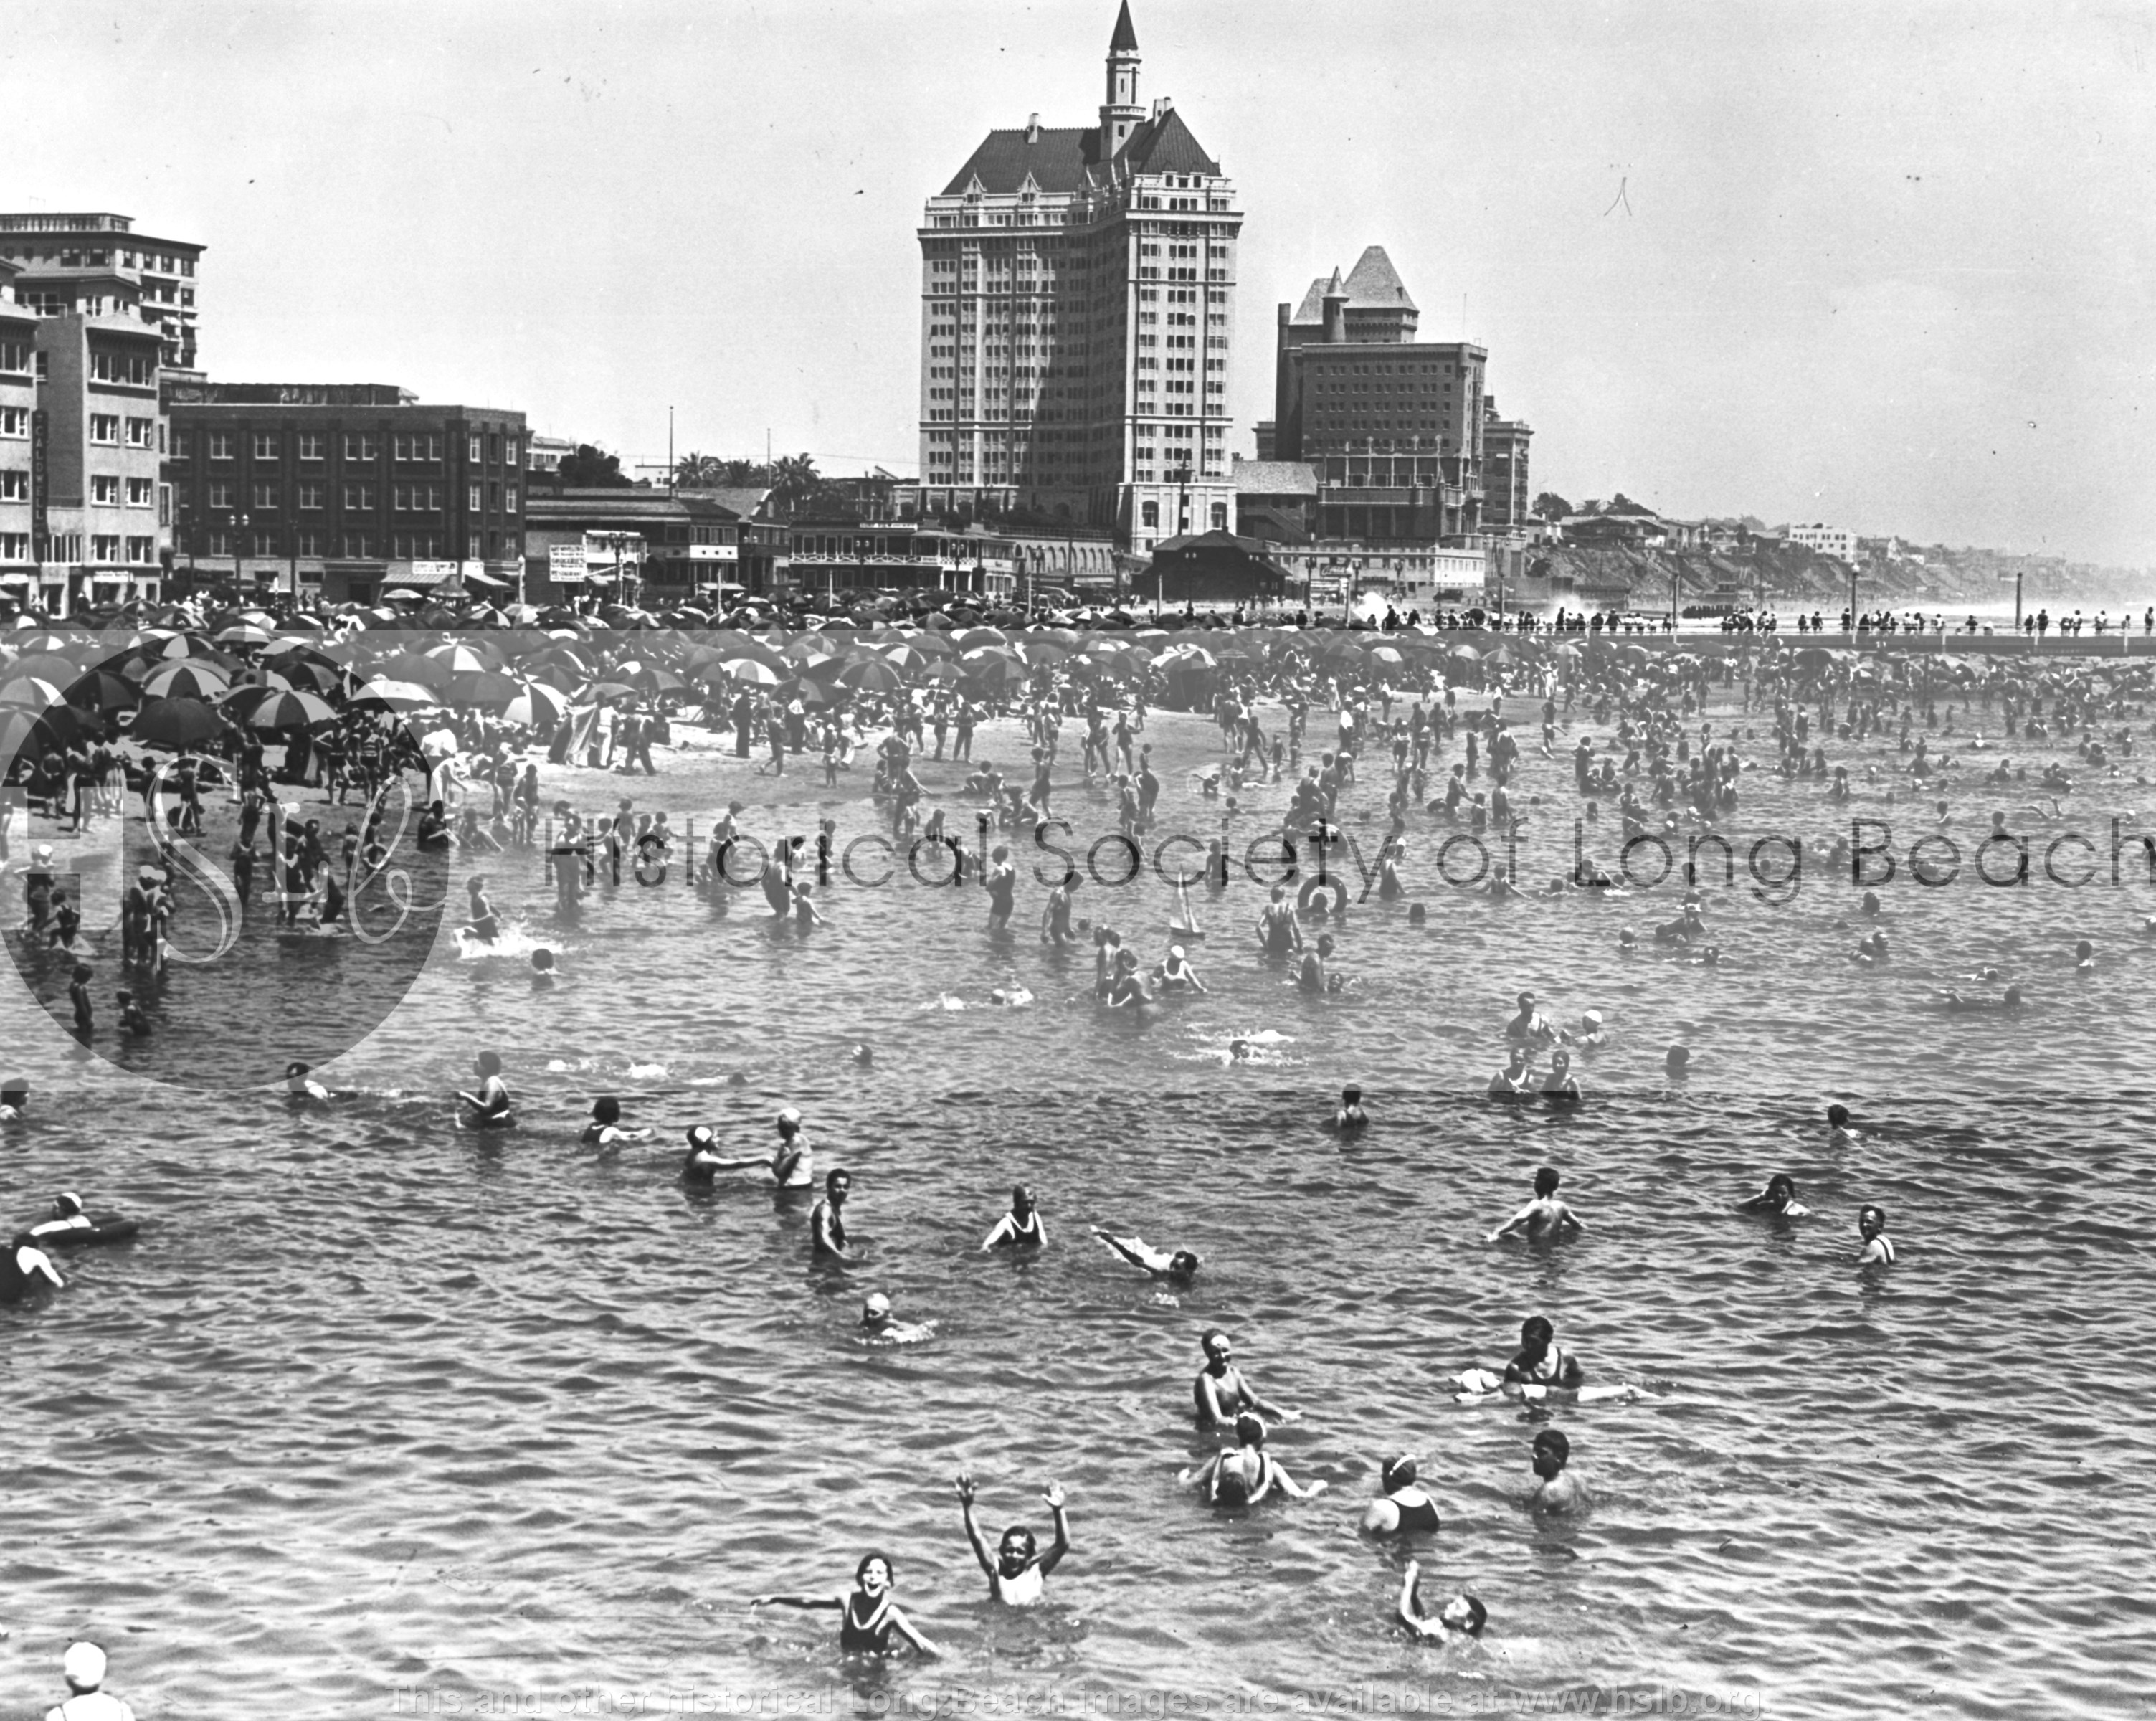 East beach, 1933 Historical photograph